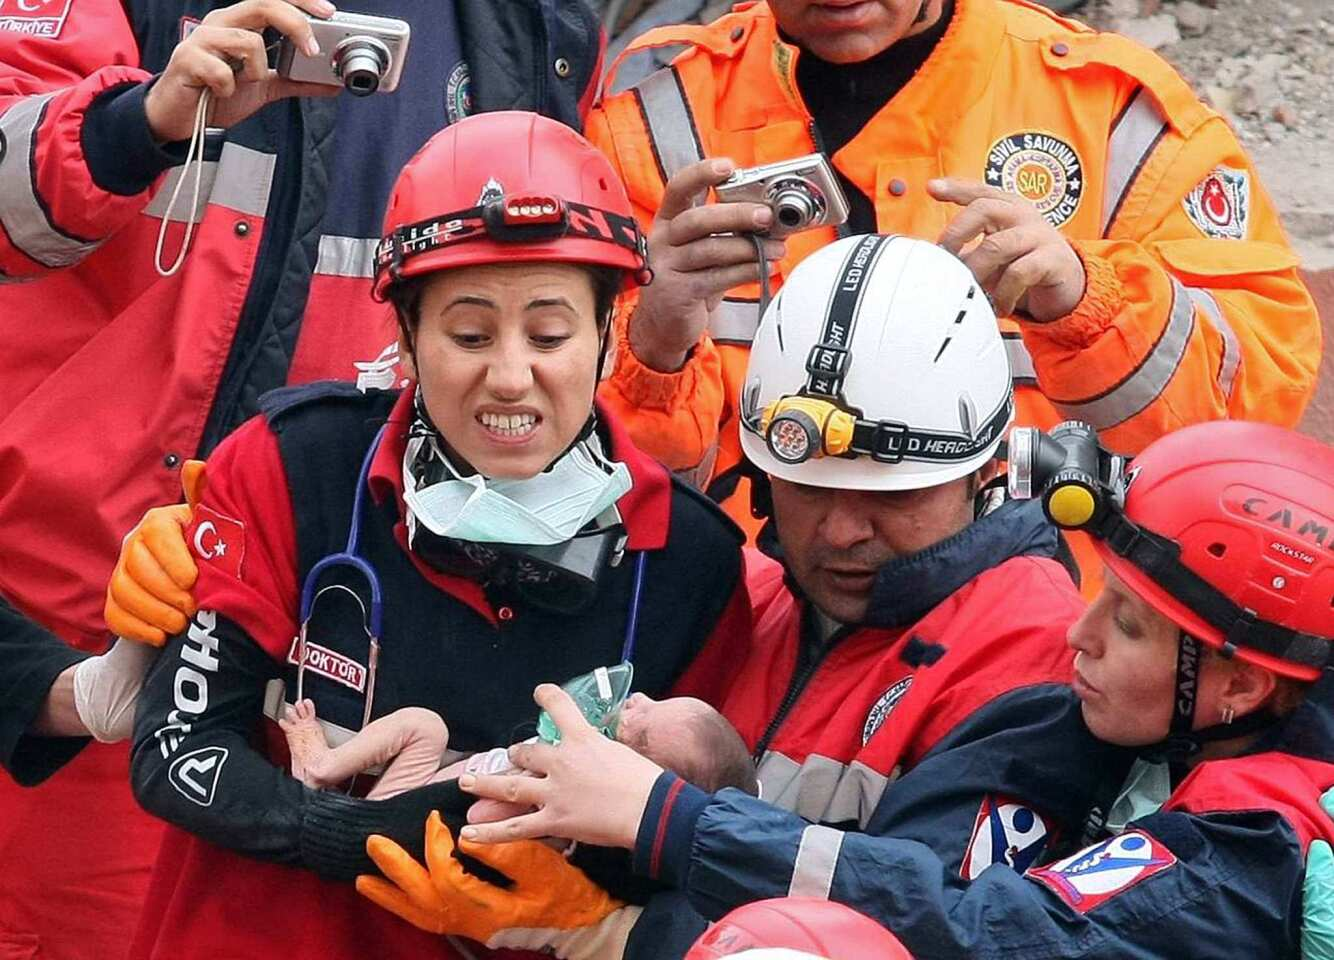 Forty-eight hours after the magnitude 7.1 earthquake quake in Turkey, 2-week-old Azra Karaduman was pulled alive from the rubble. Infant, her mother pulled from wreckage of earthquake in Turkey